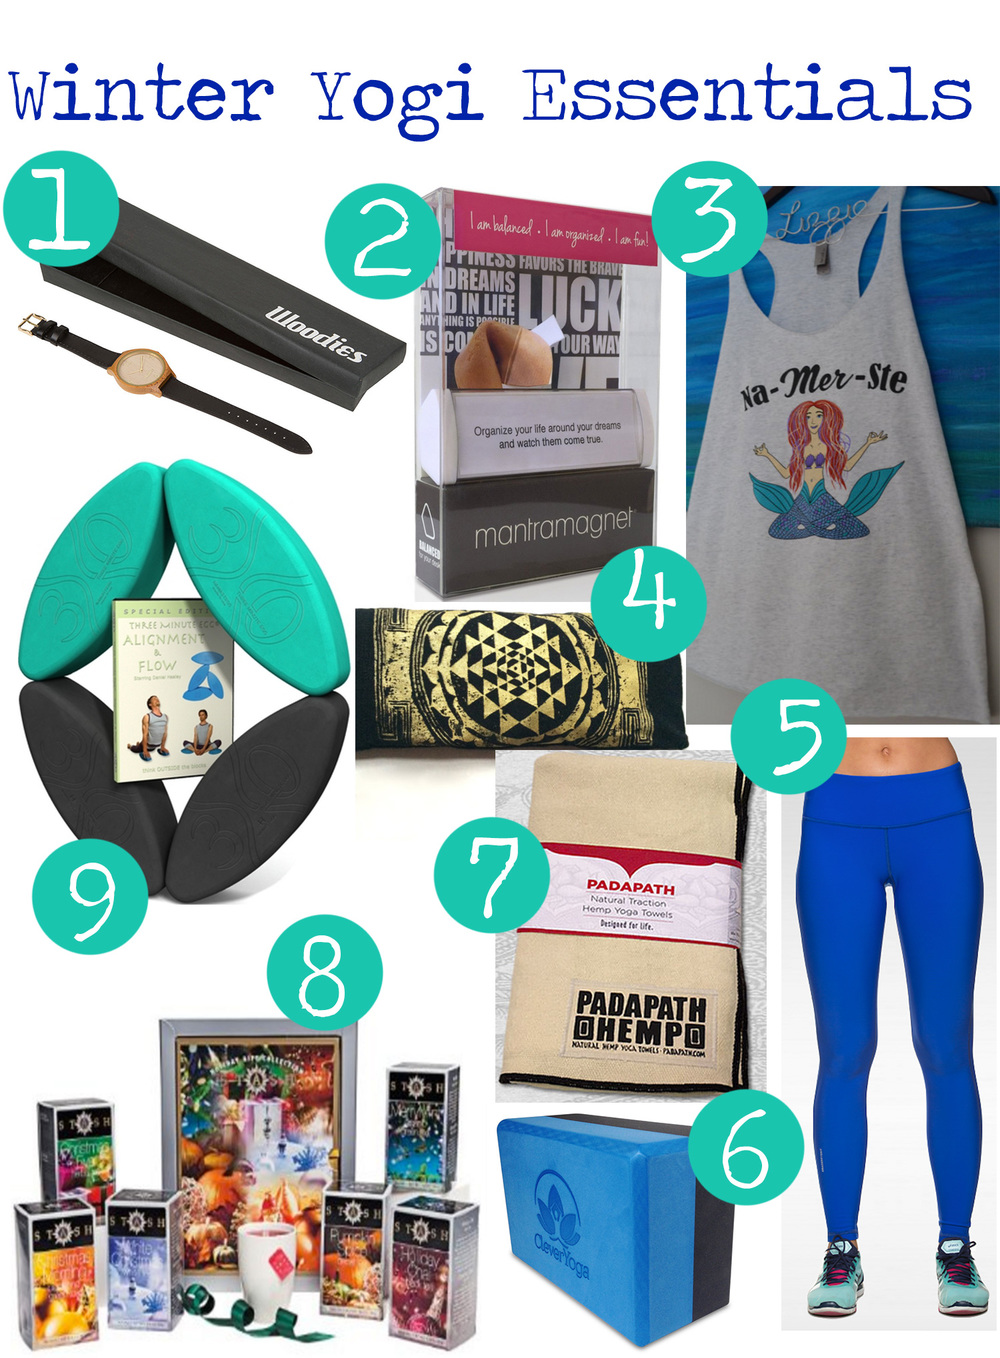 Pin now and enter to win the Winter Yogi Essentials Giveaway